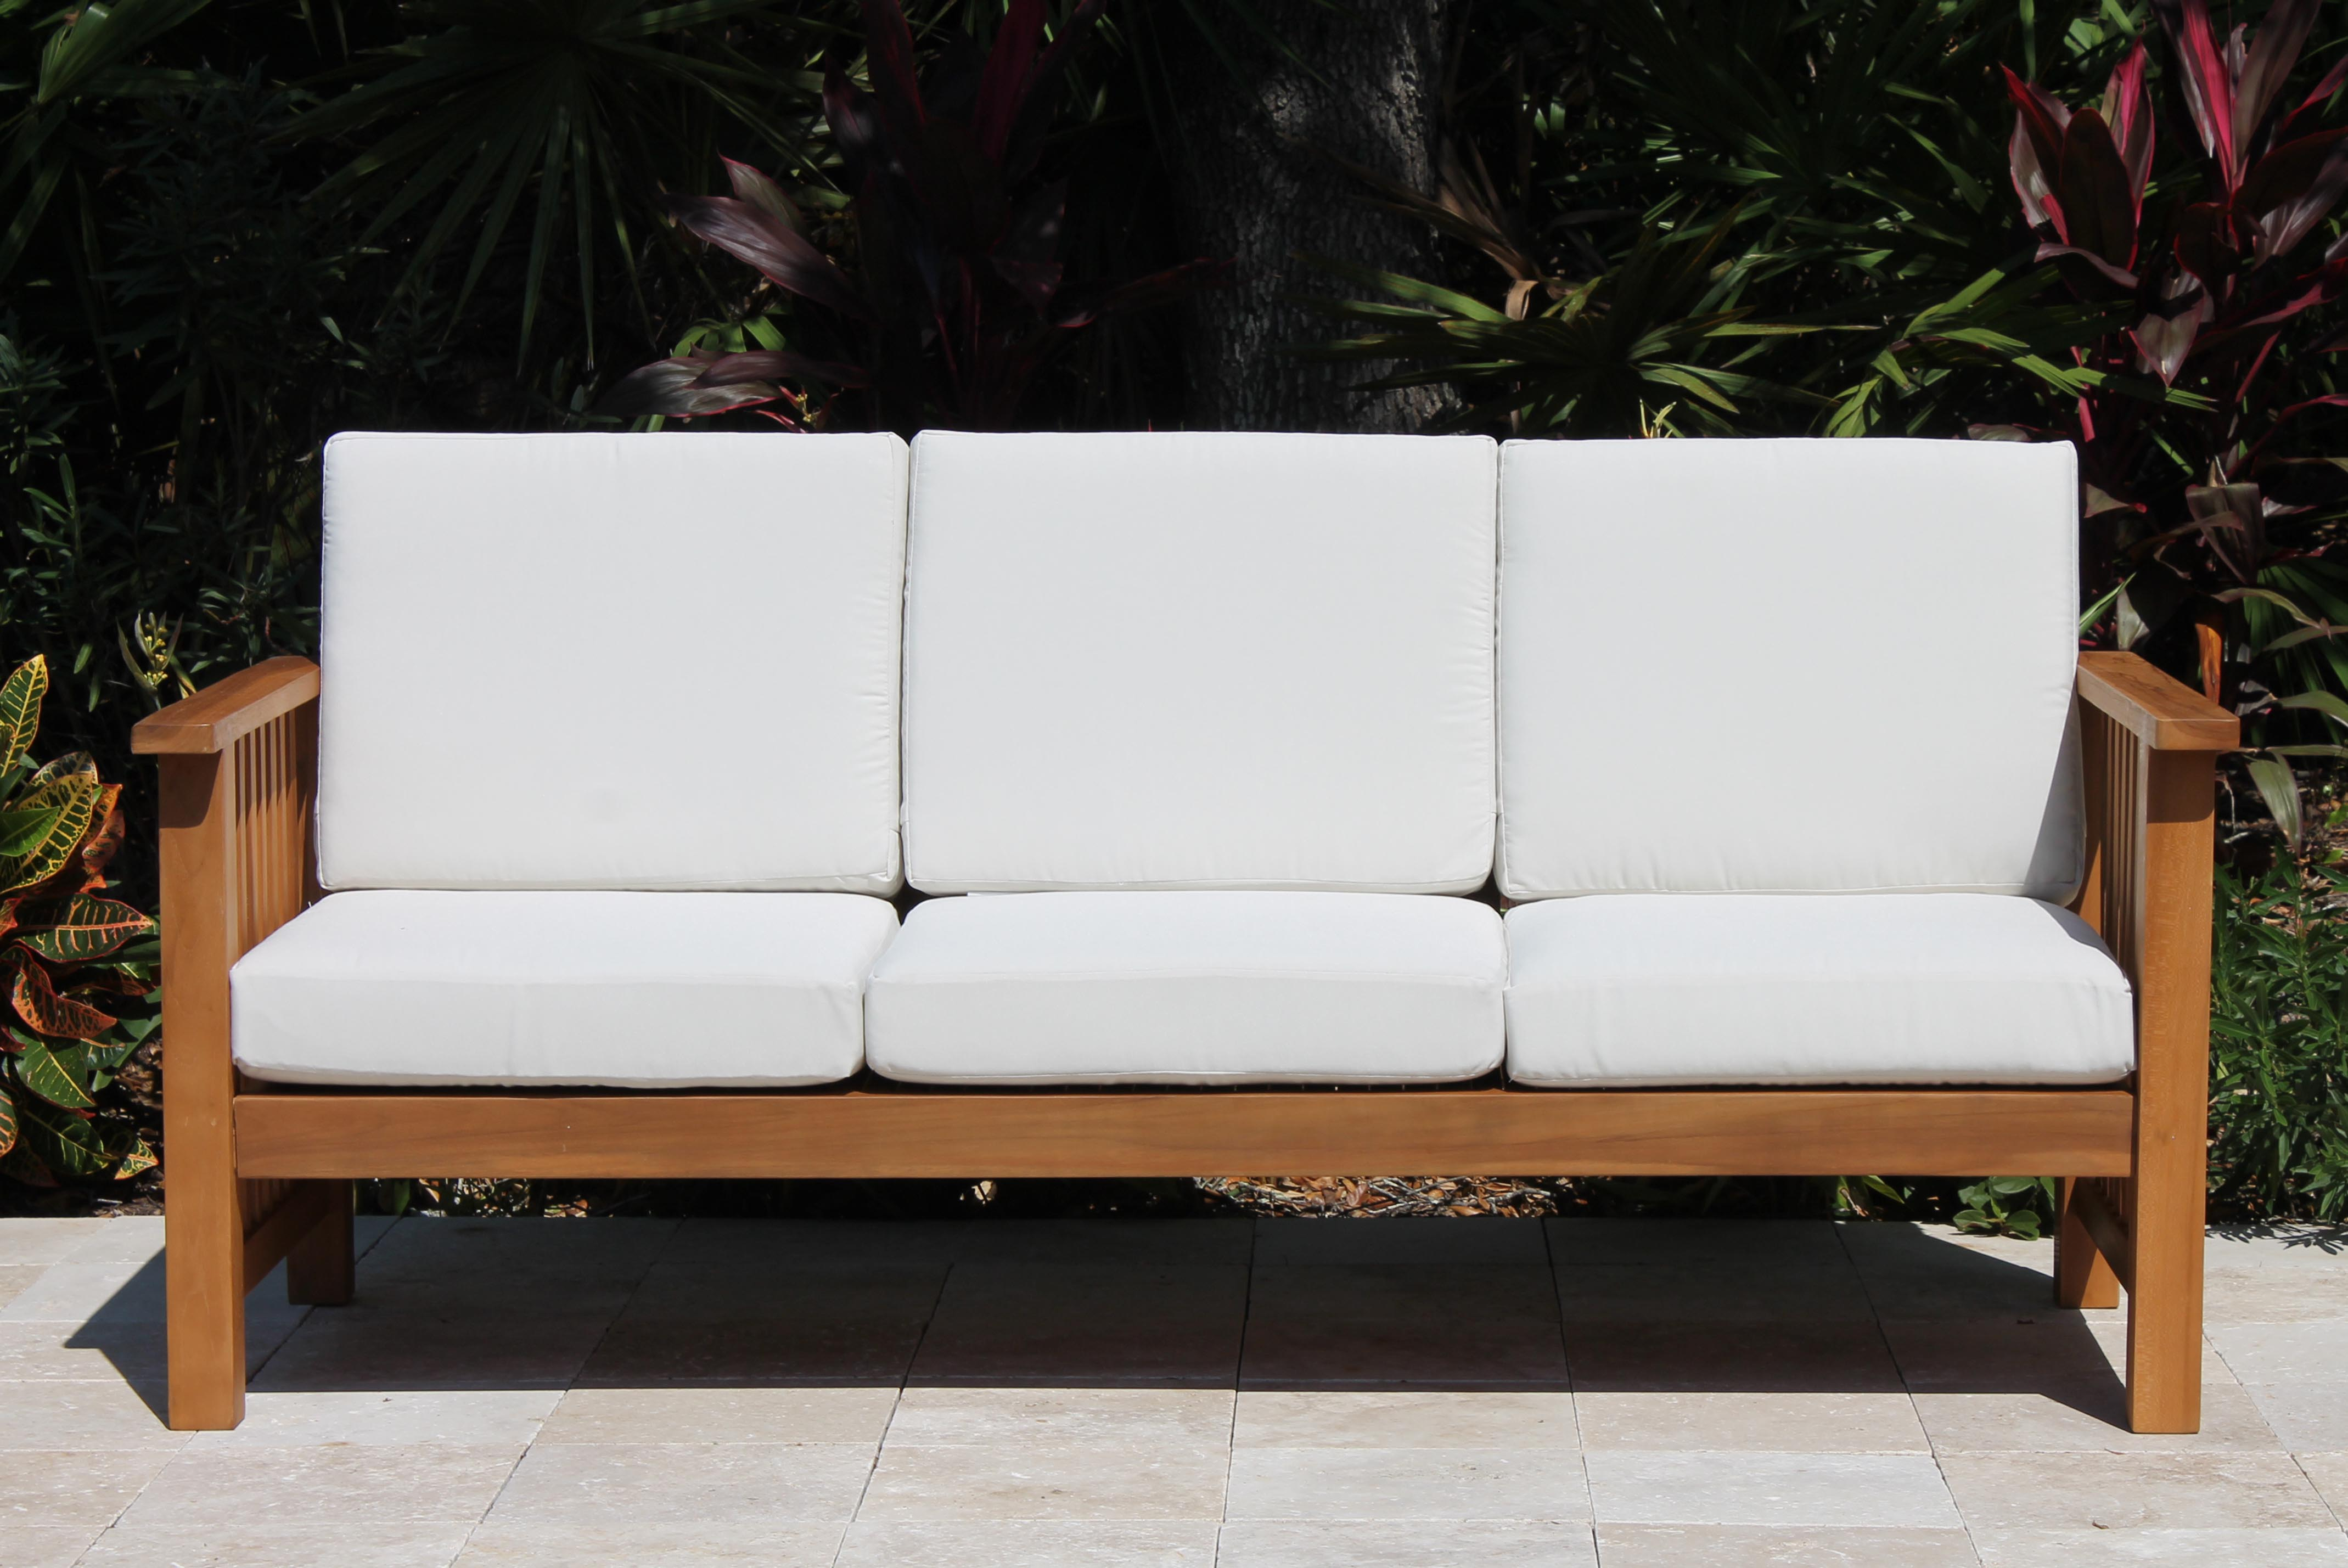 Southampton Deep Seat Teak Sofa Including Full Sunbrella Cushions